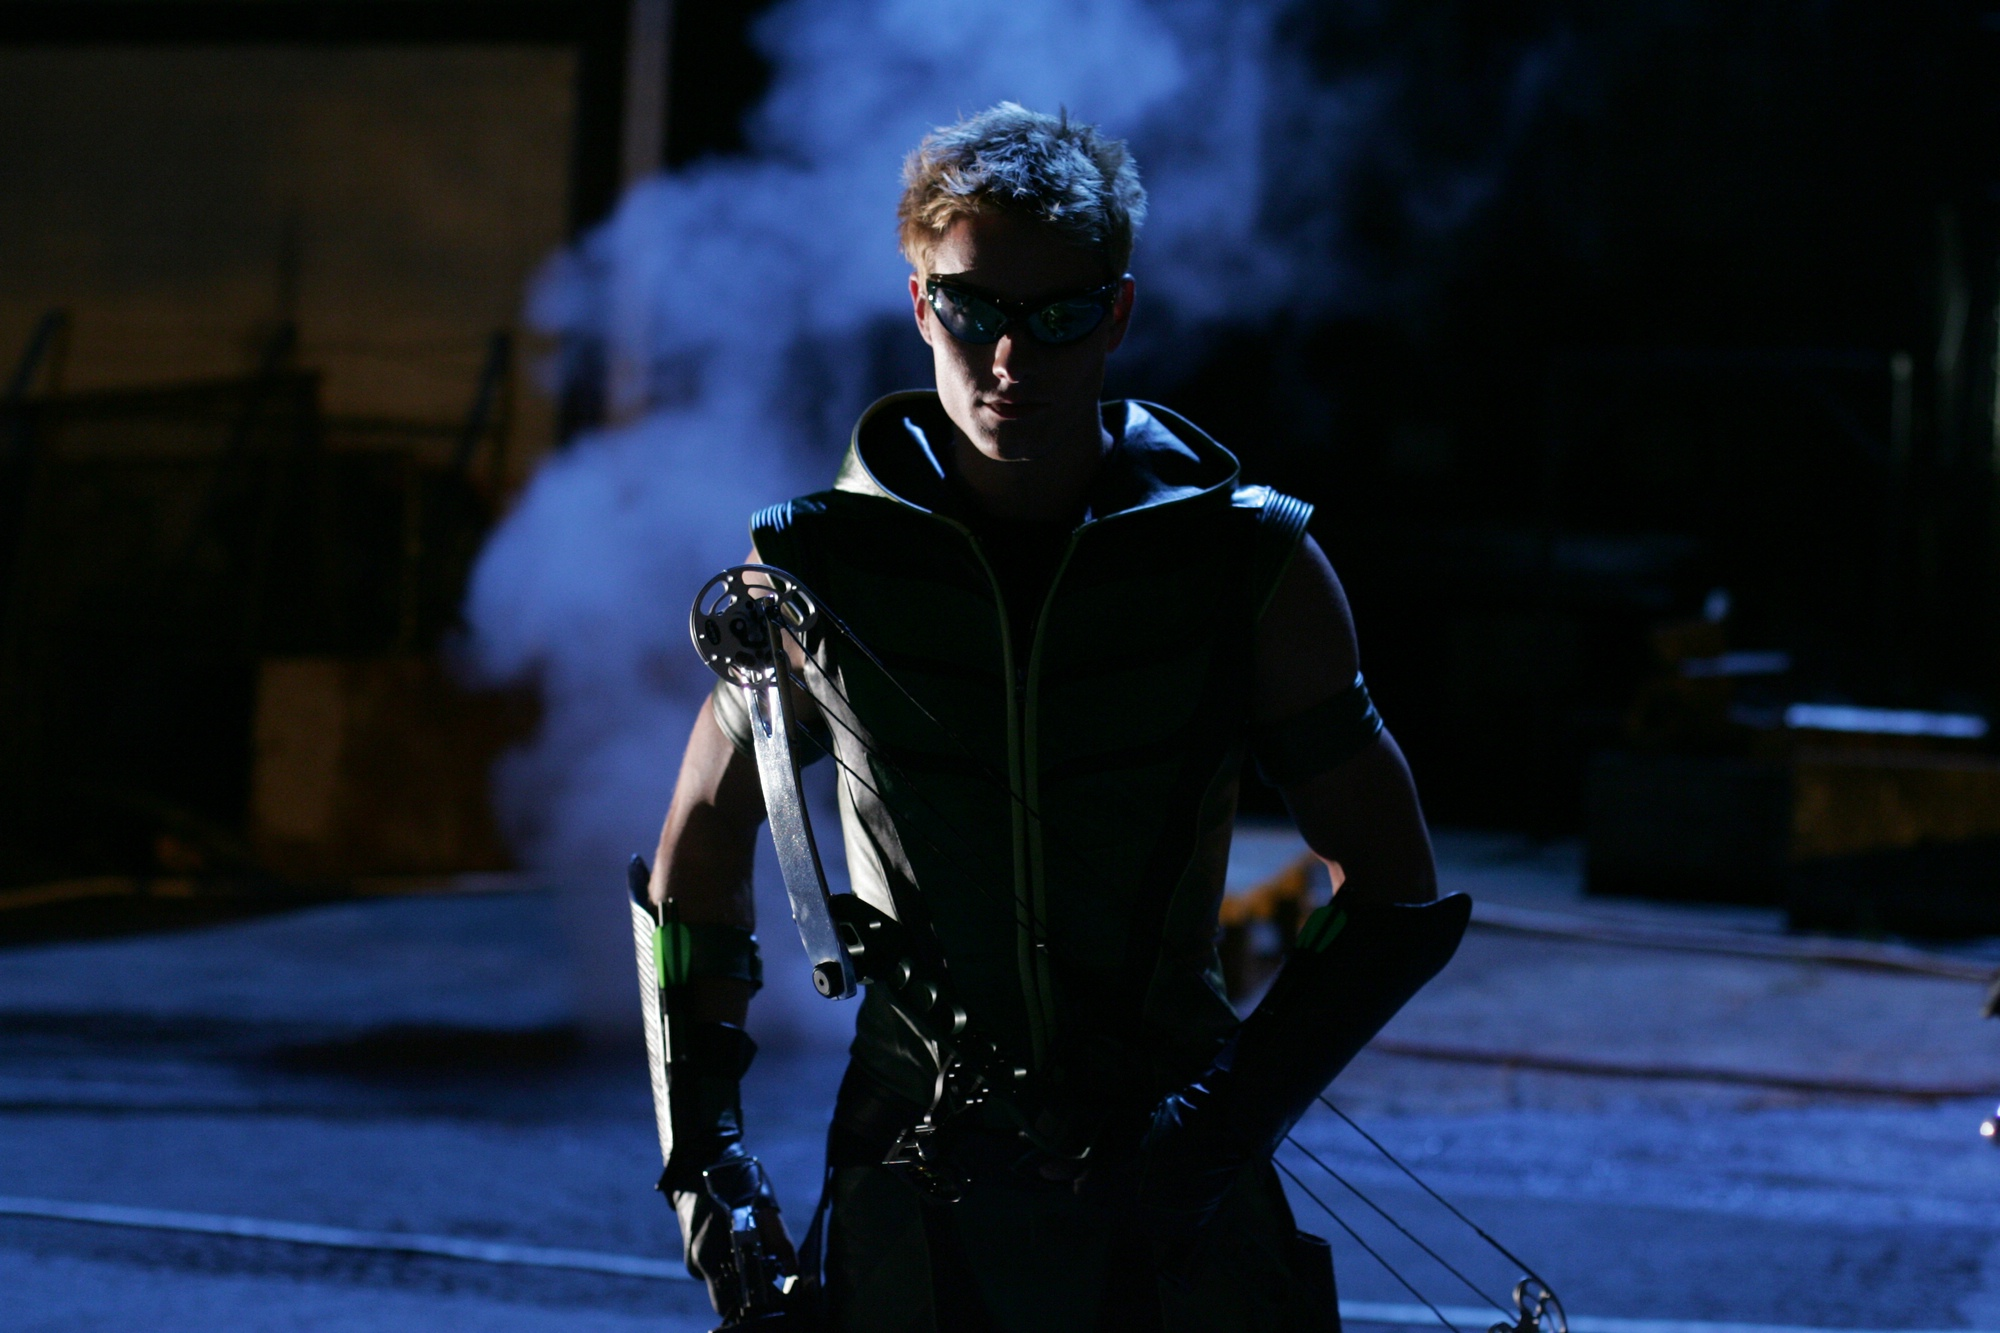 Smallville (TV Series) Episode: Arrow